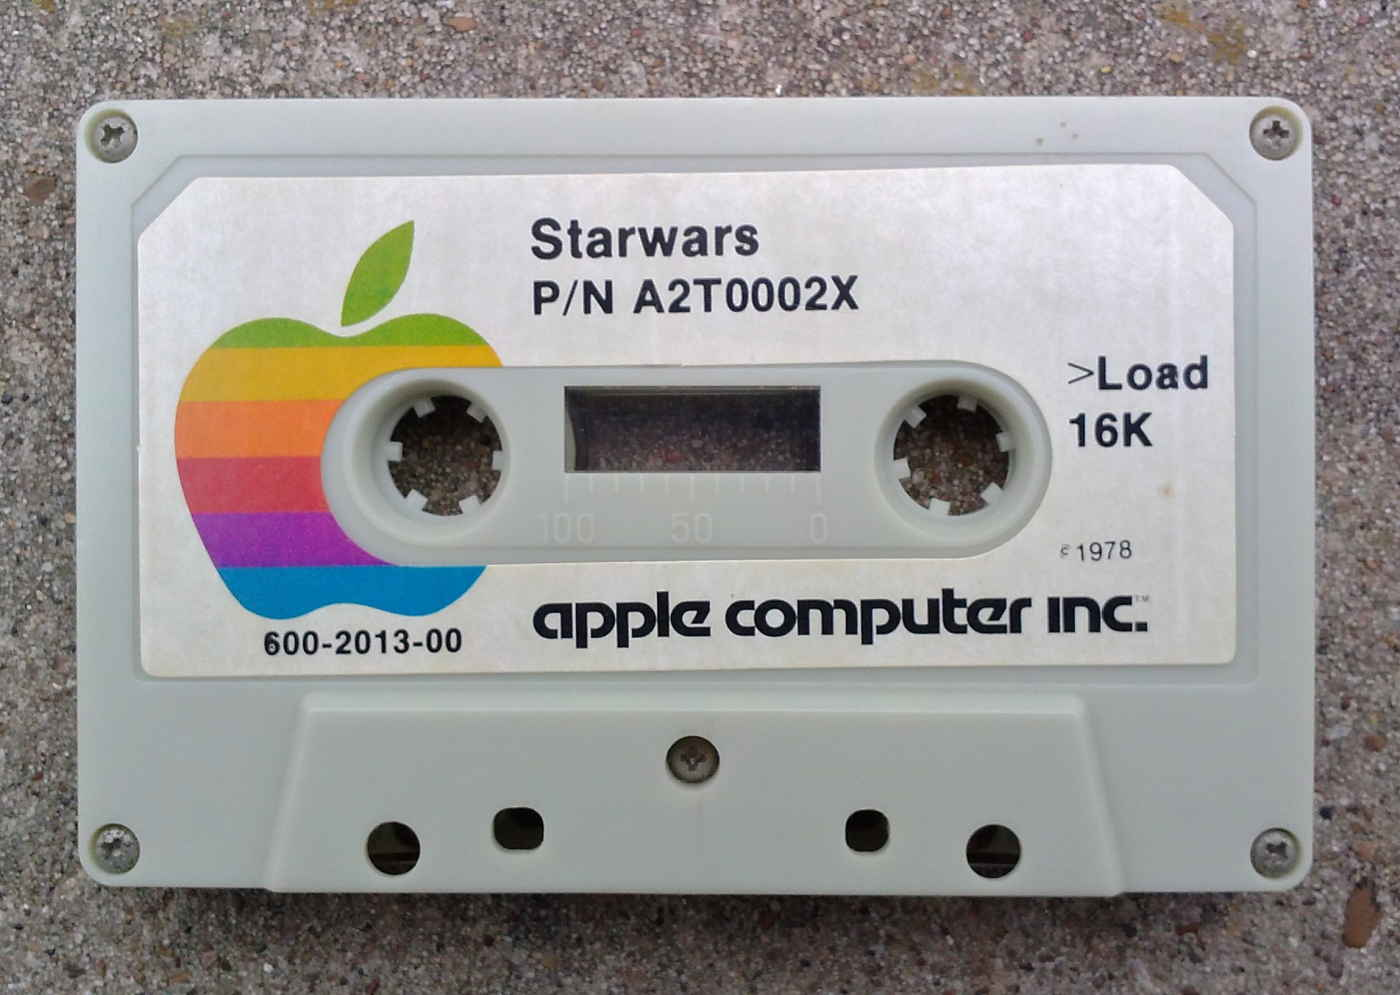 Apple 'Star Wars' program cassette